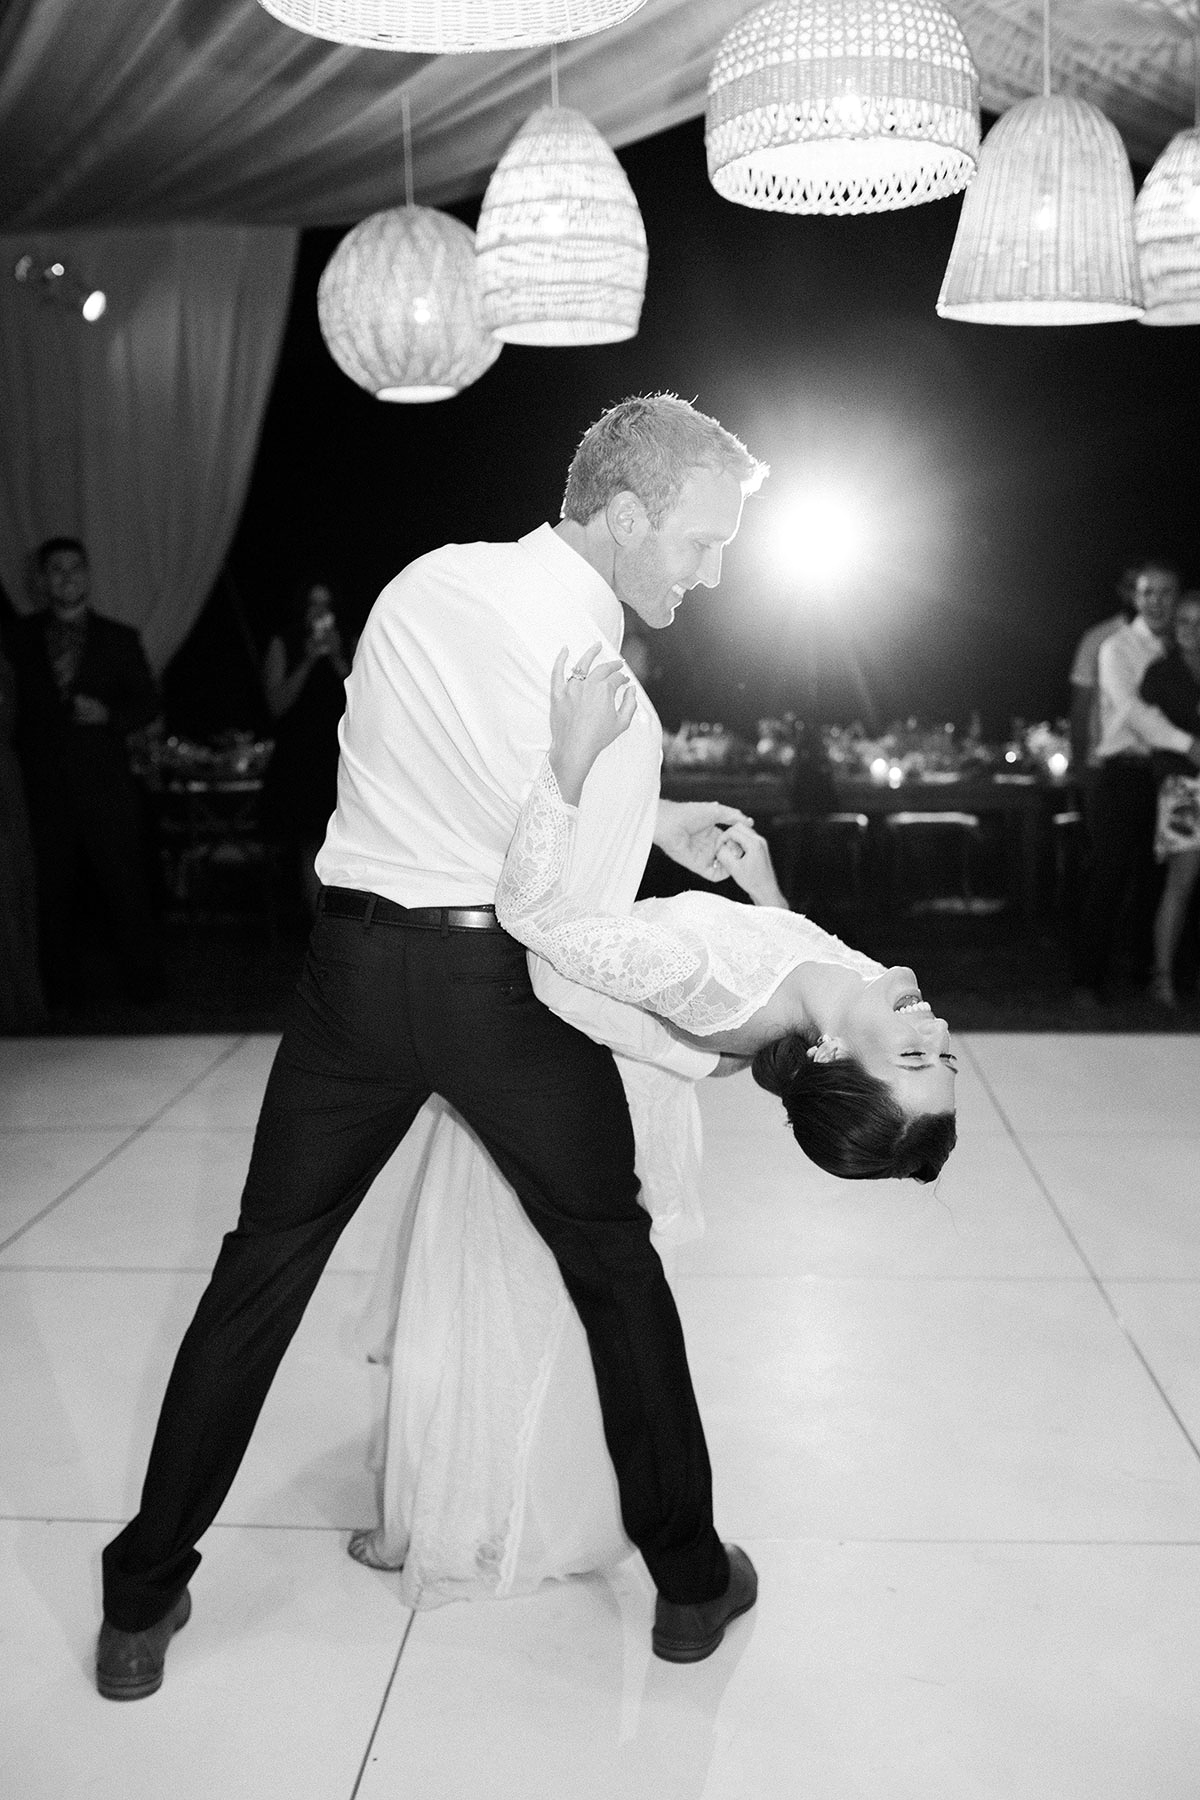 jena donny wedding first dance couple dip black and white